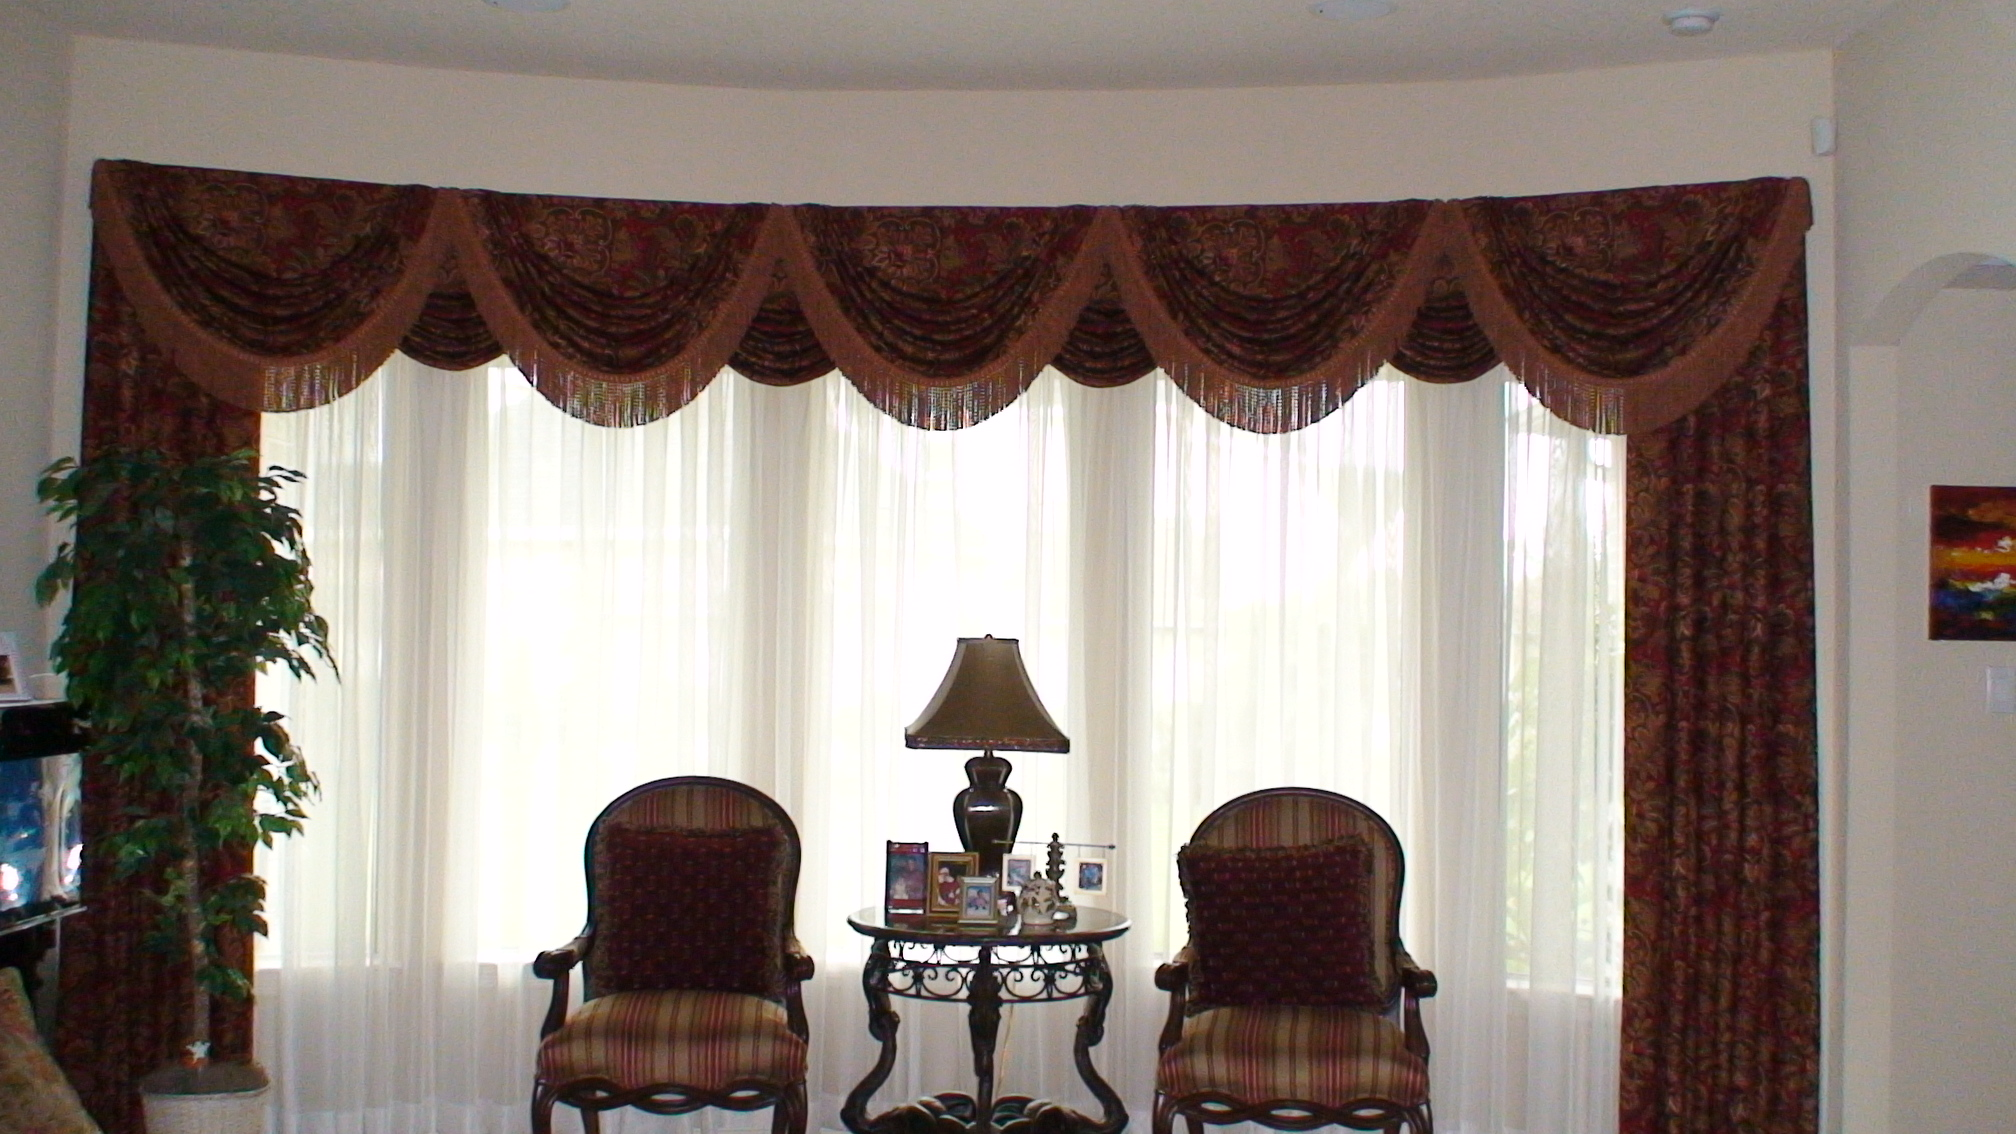 professional custom made draperies dress your window beautifully. it brings  the color, PQOCBNQ